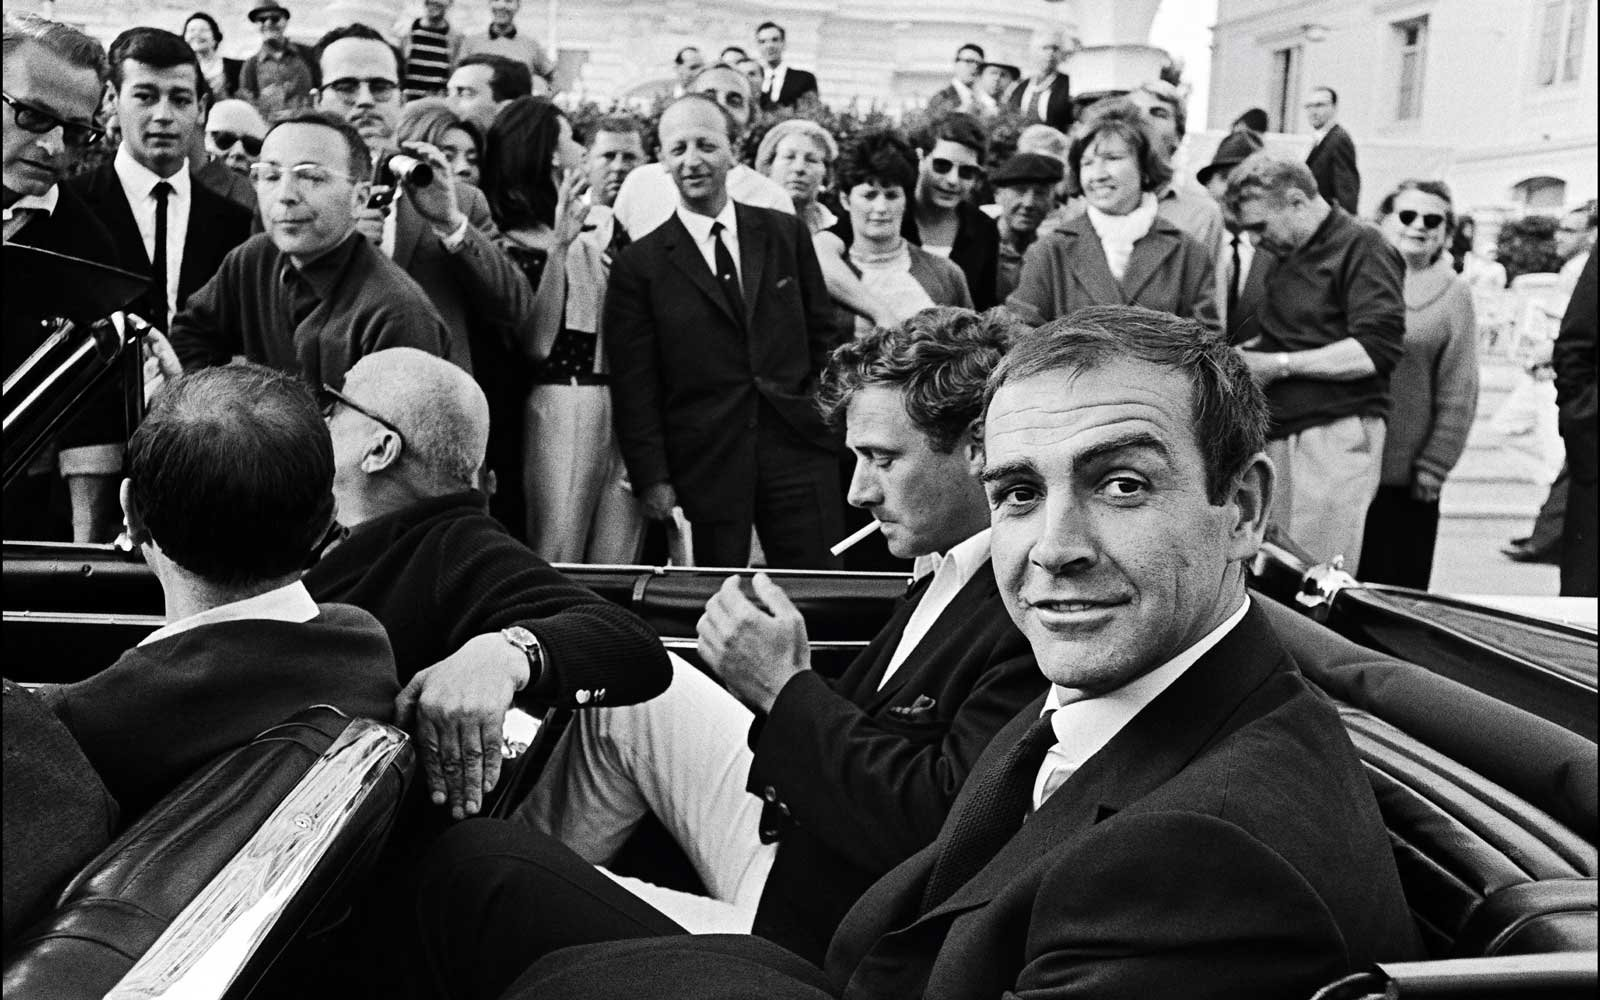 James Bond at Cannes